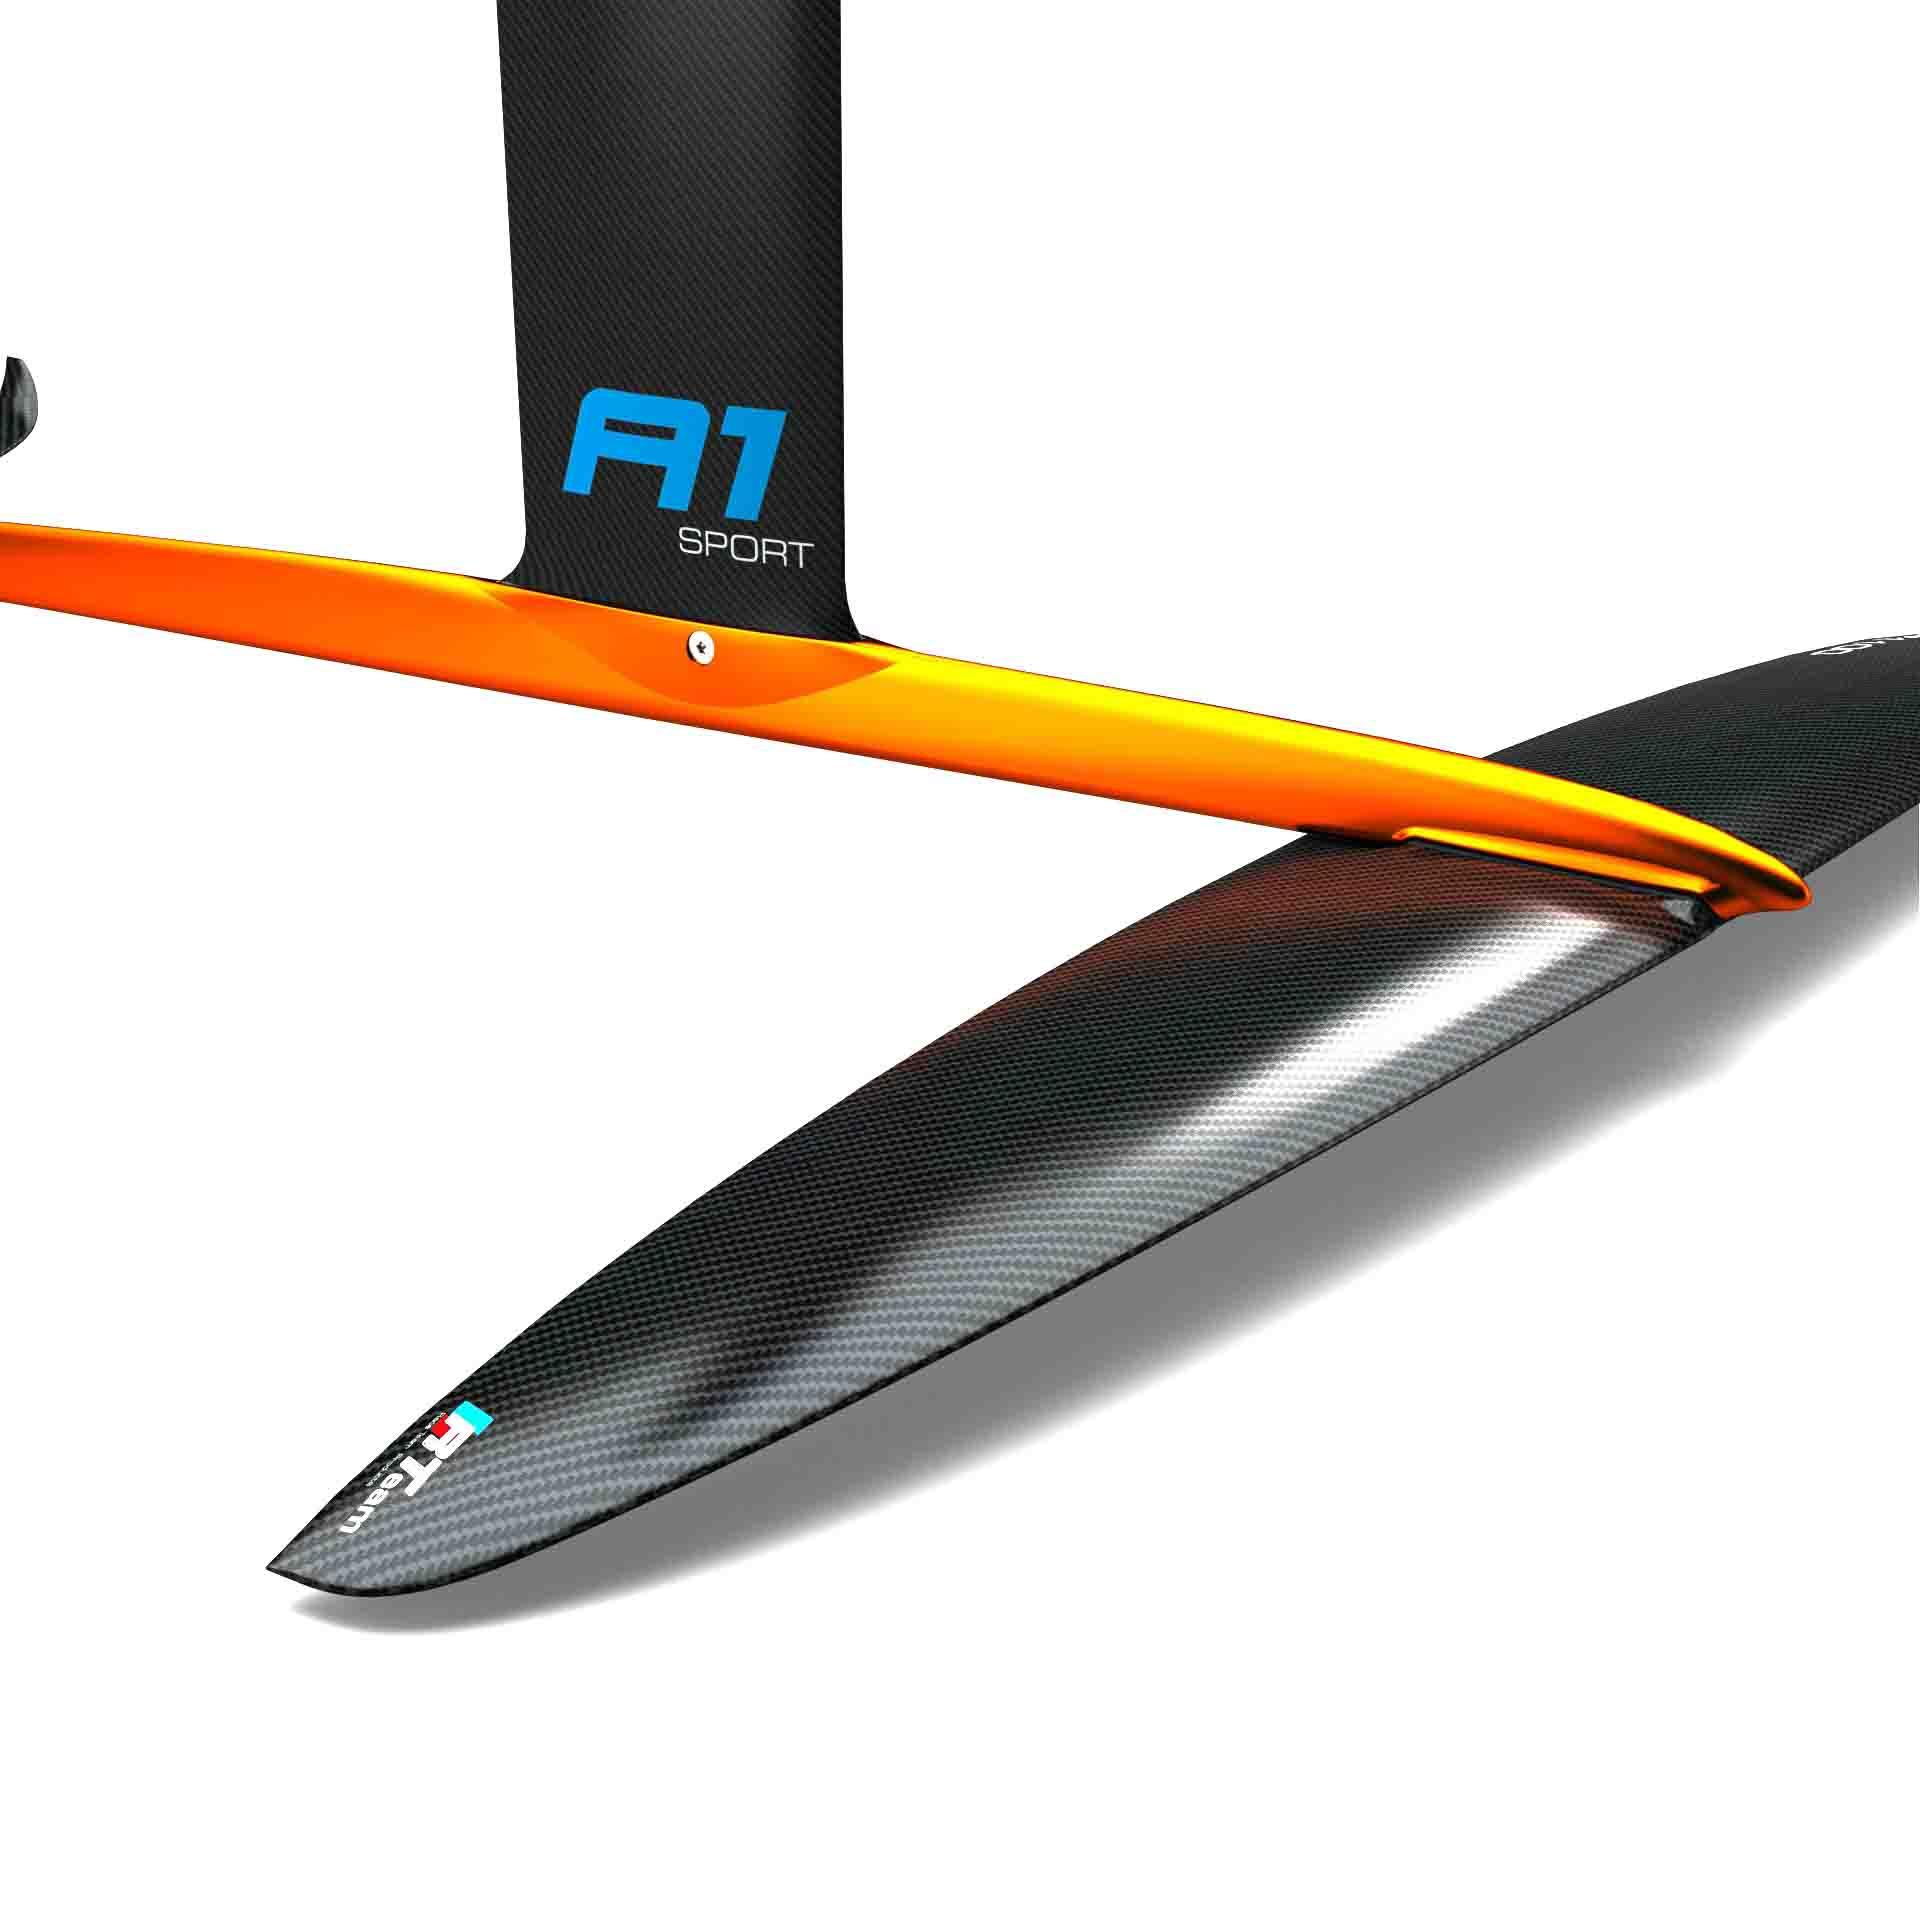 Windfoil alpinefoil a1 sport carbon regatta 1100 7